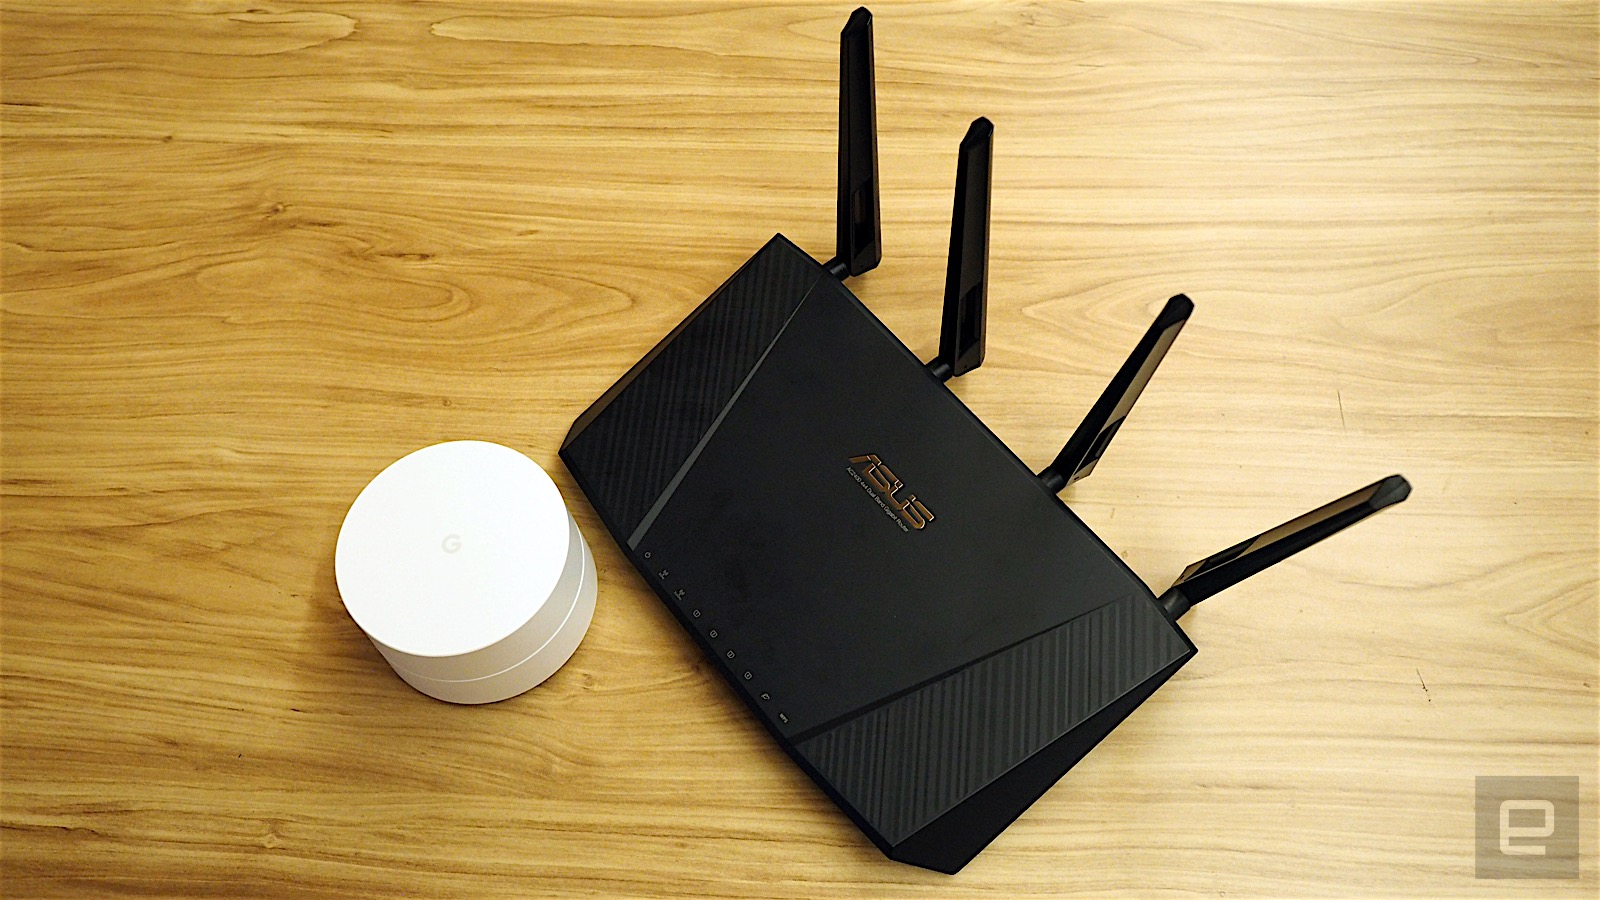 Google Wifi Review A Hassle Free Router Comes At Price Diagram Also T Wireless U Verse Box Connections On Wiring Performance